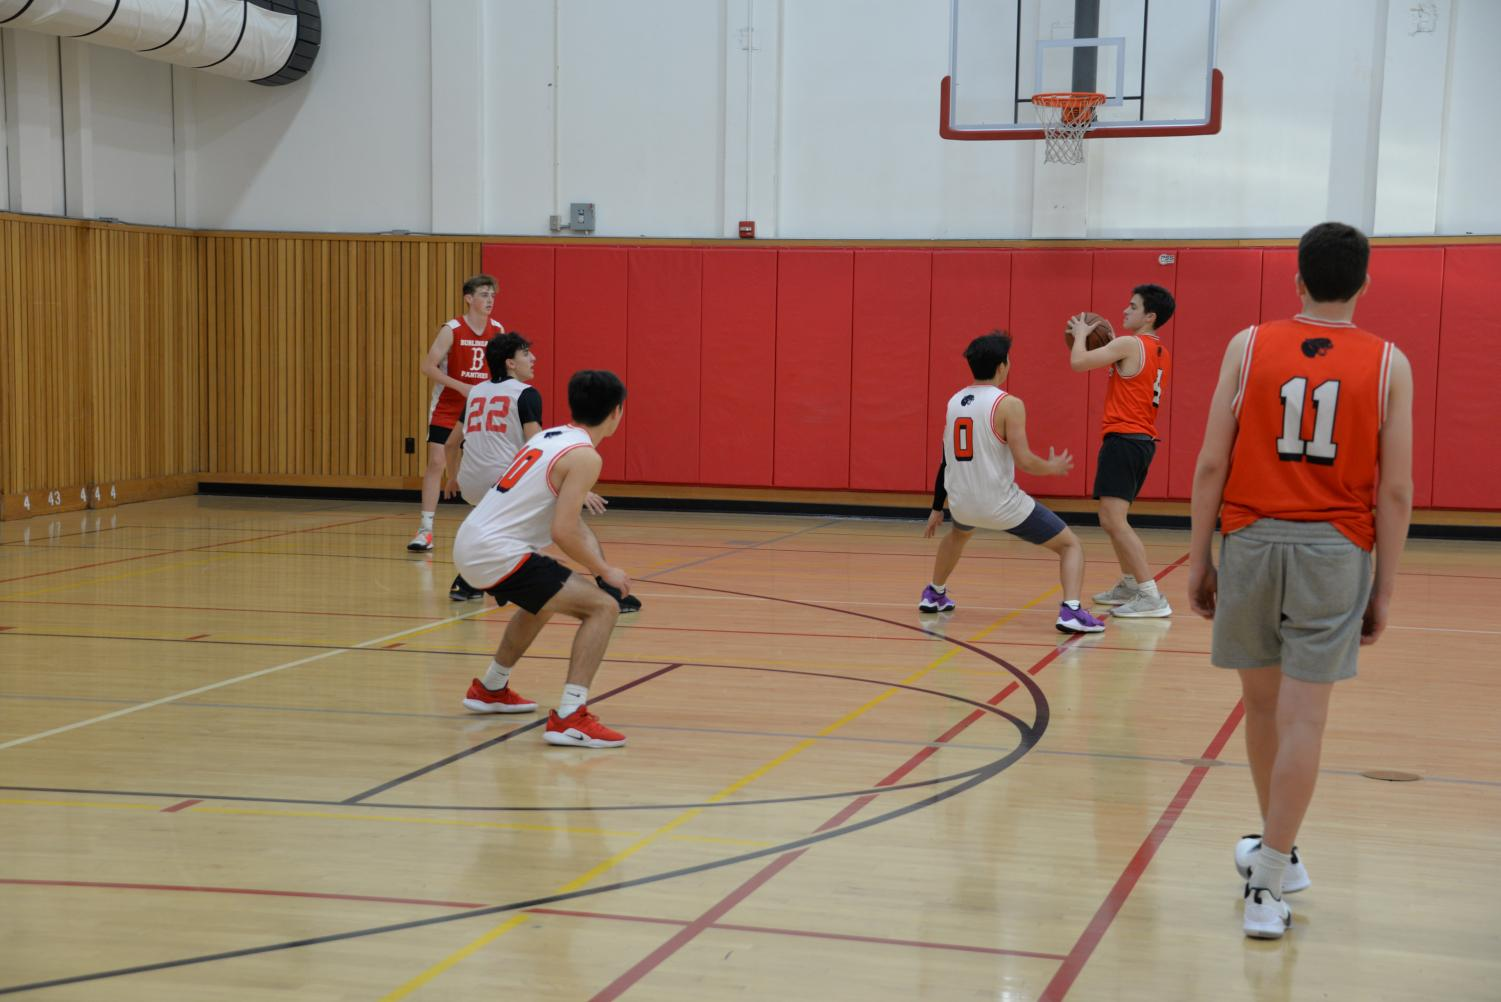 Sophomore Sean Richardson looking to make a play while being defended by fellow sophomore Jacob Yamagishi.